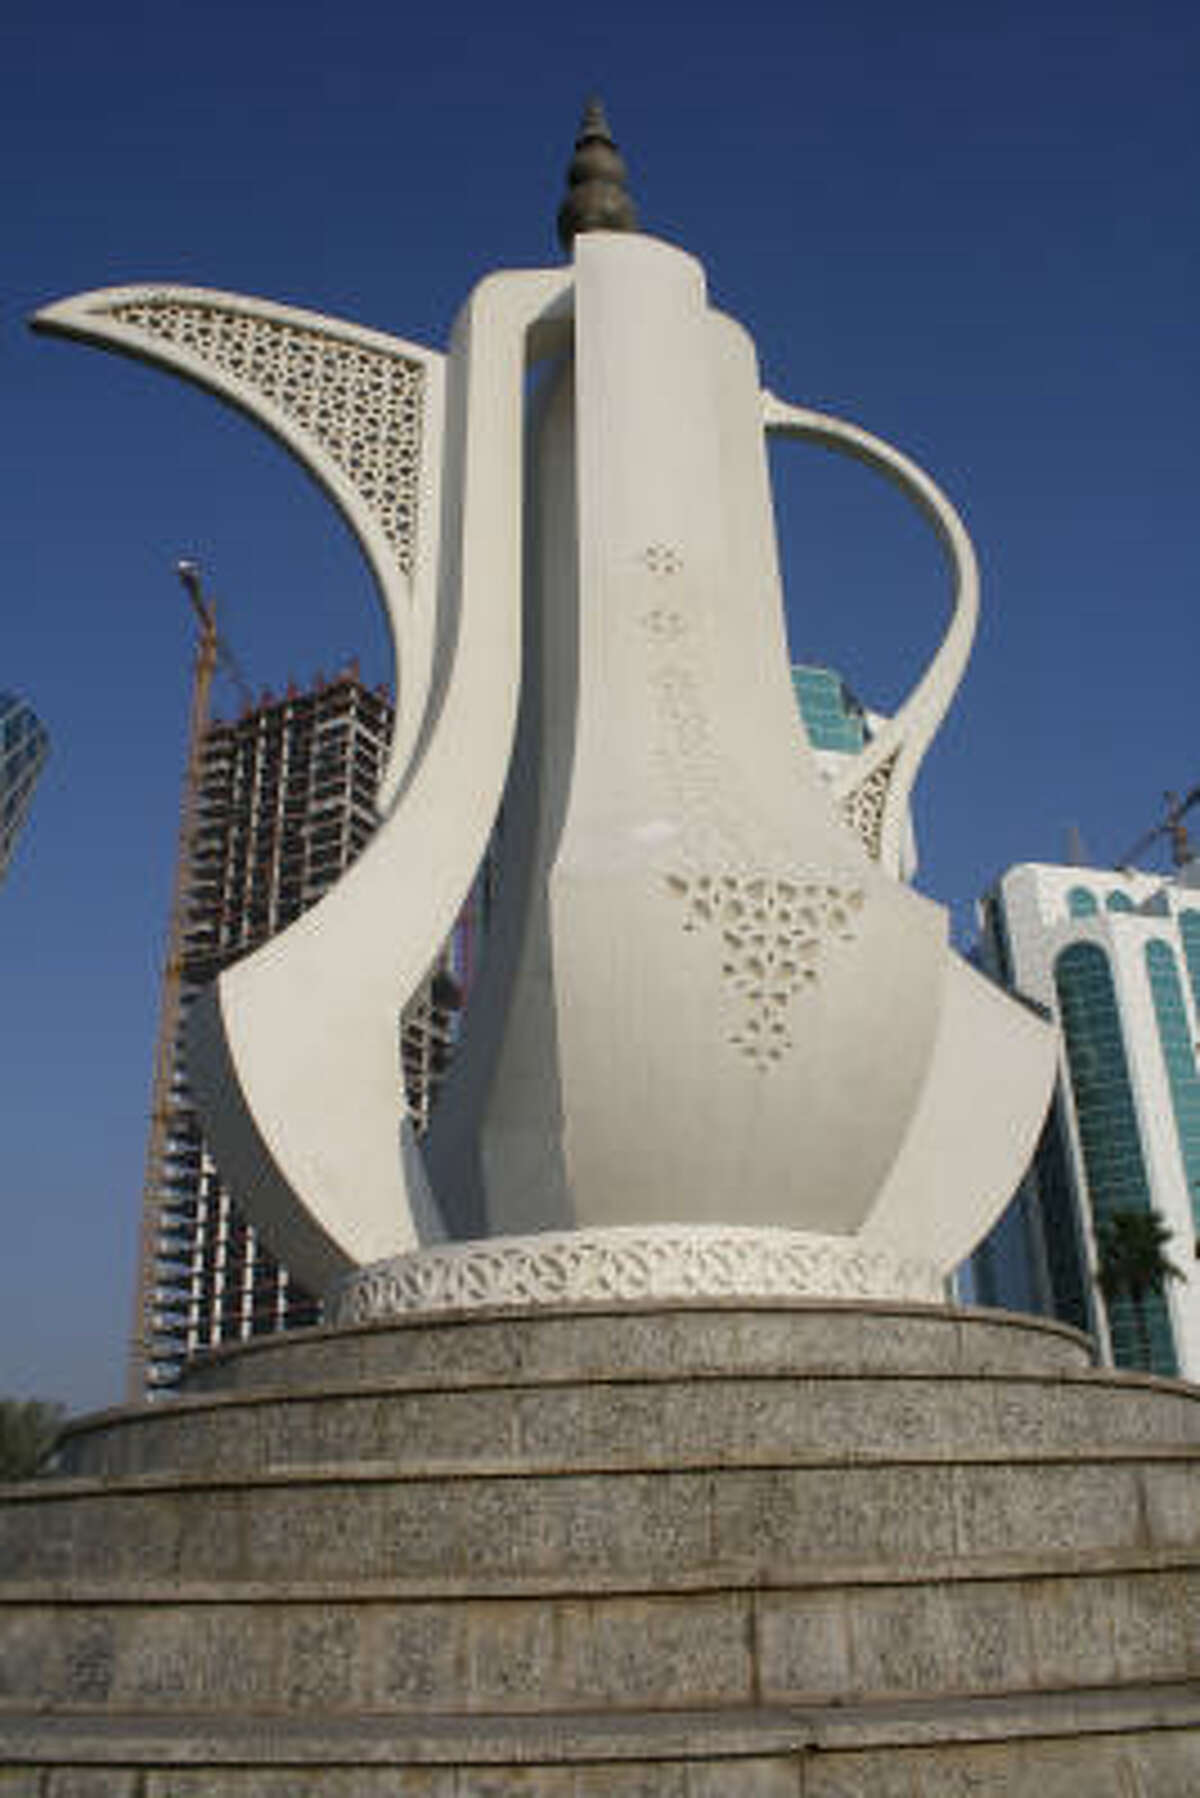 The teapot statue, a symbol of Arab hospitality, adorns the entrance to the Corniche Boulevard.